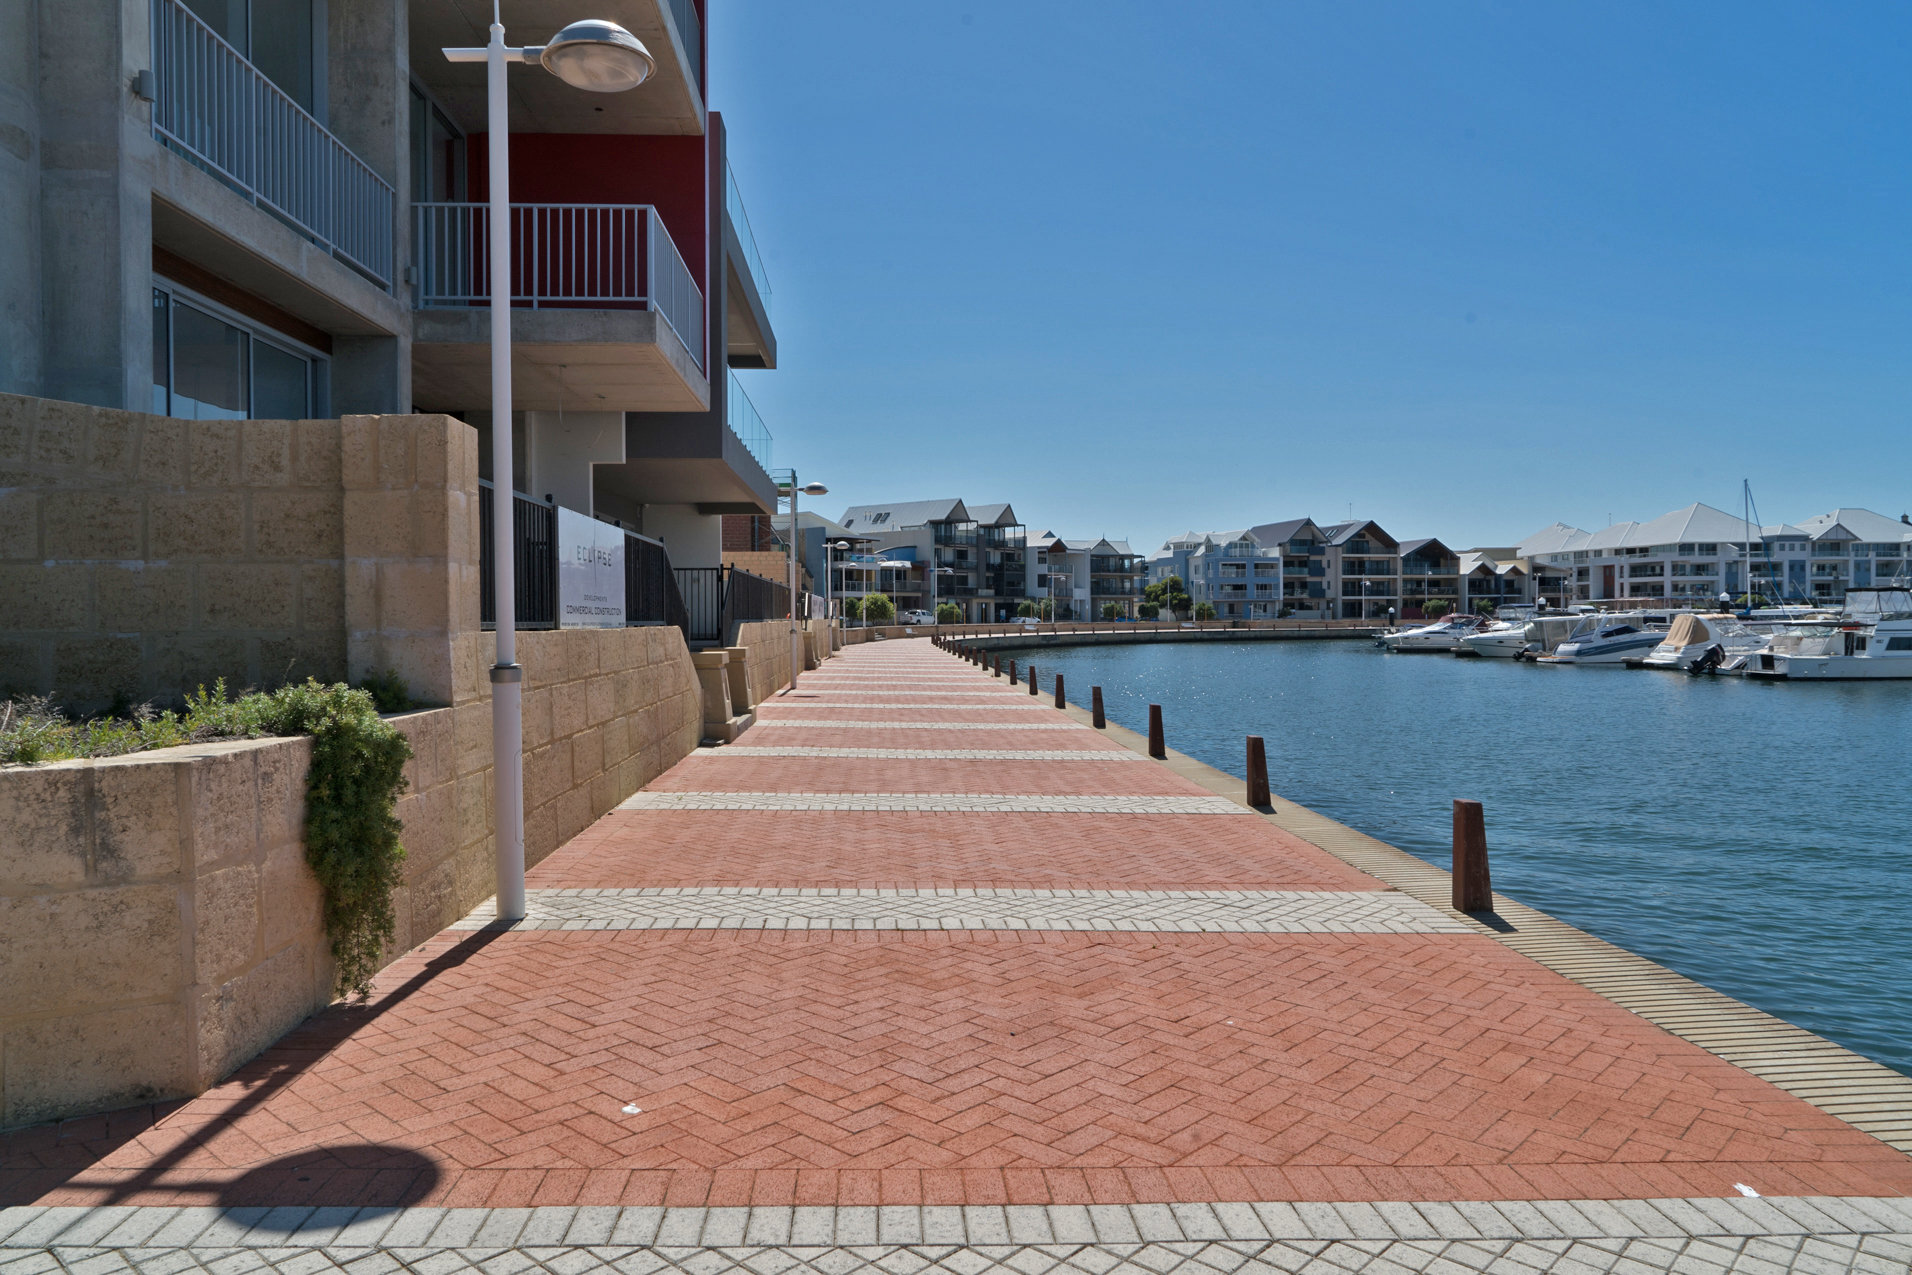 Plate 8: Path along the waterfront